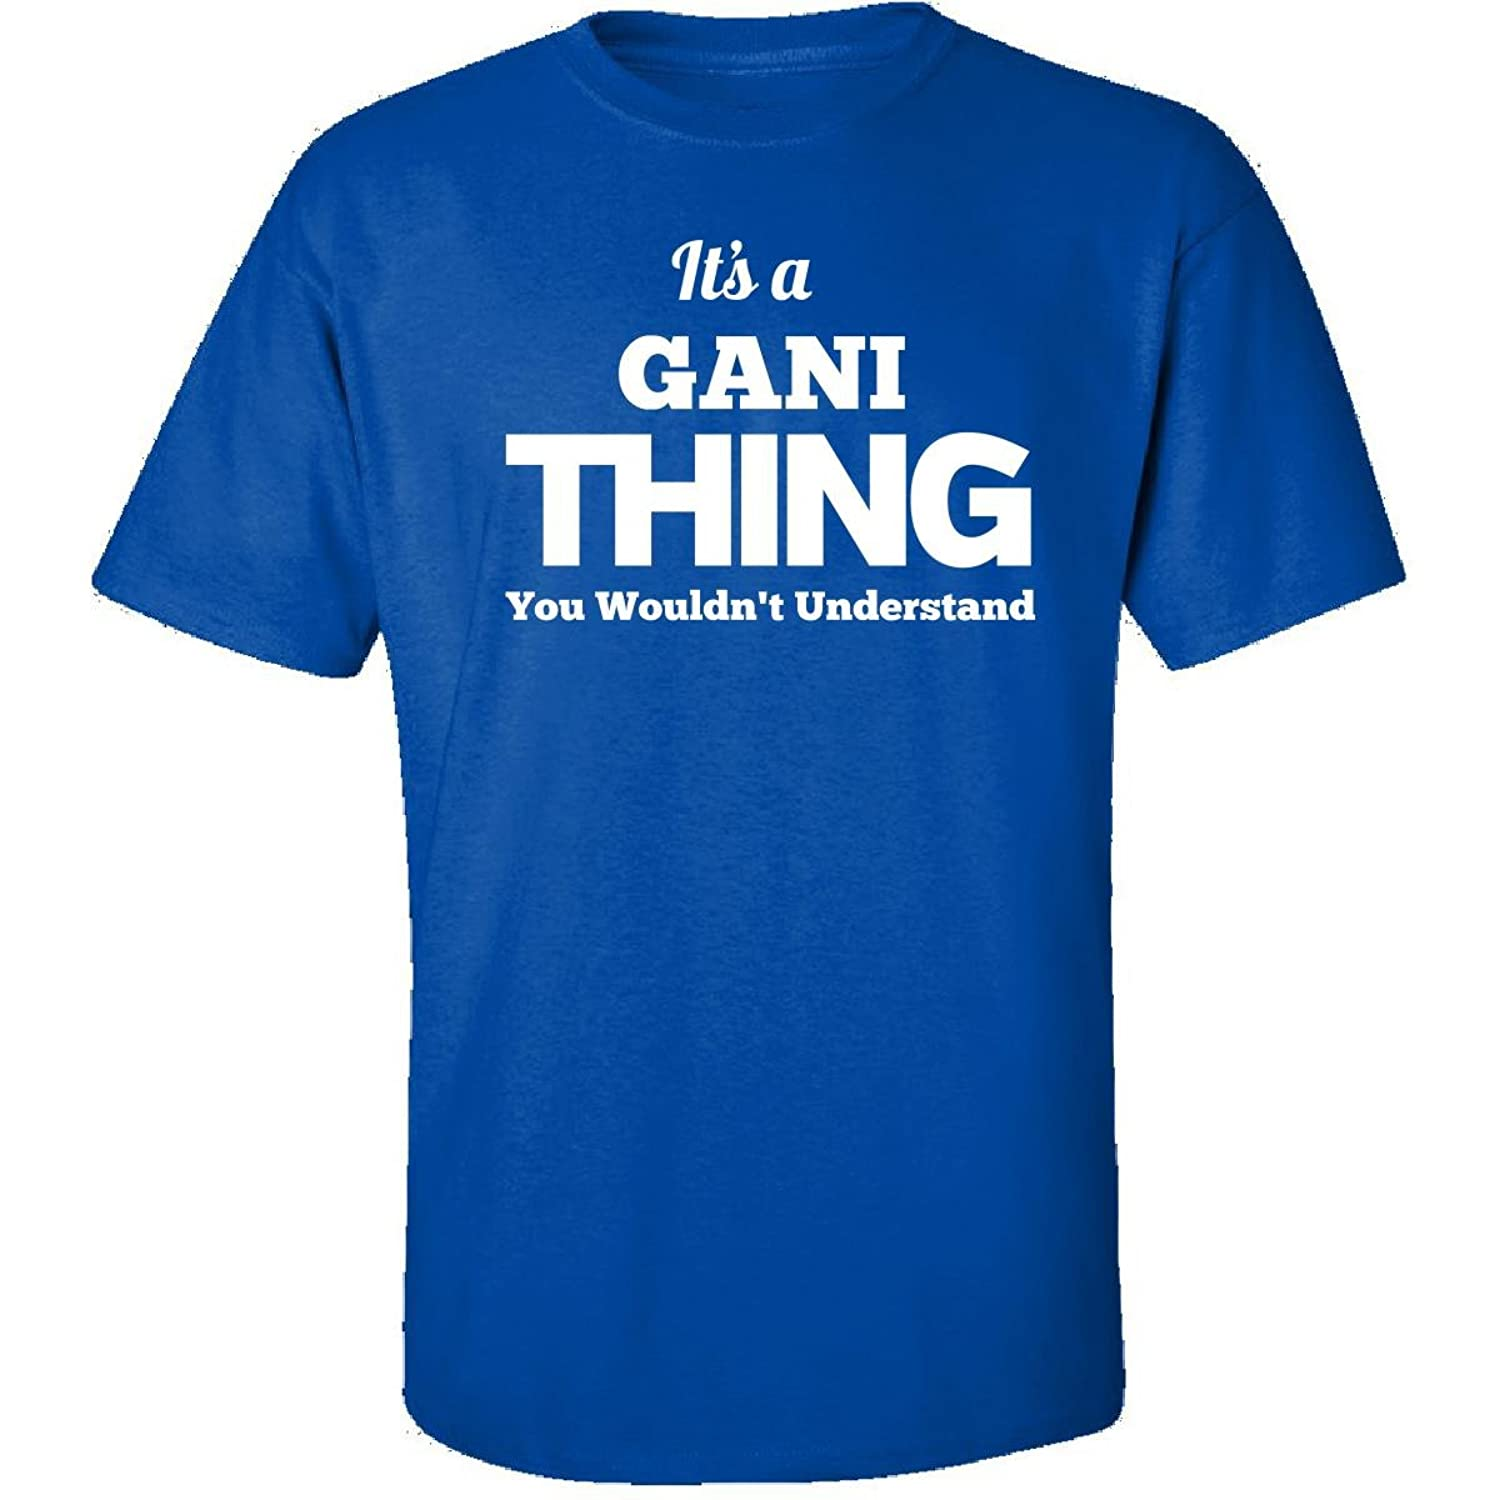 Its A Gani Thing You Wouldnt Understand - Adult Shirt